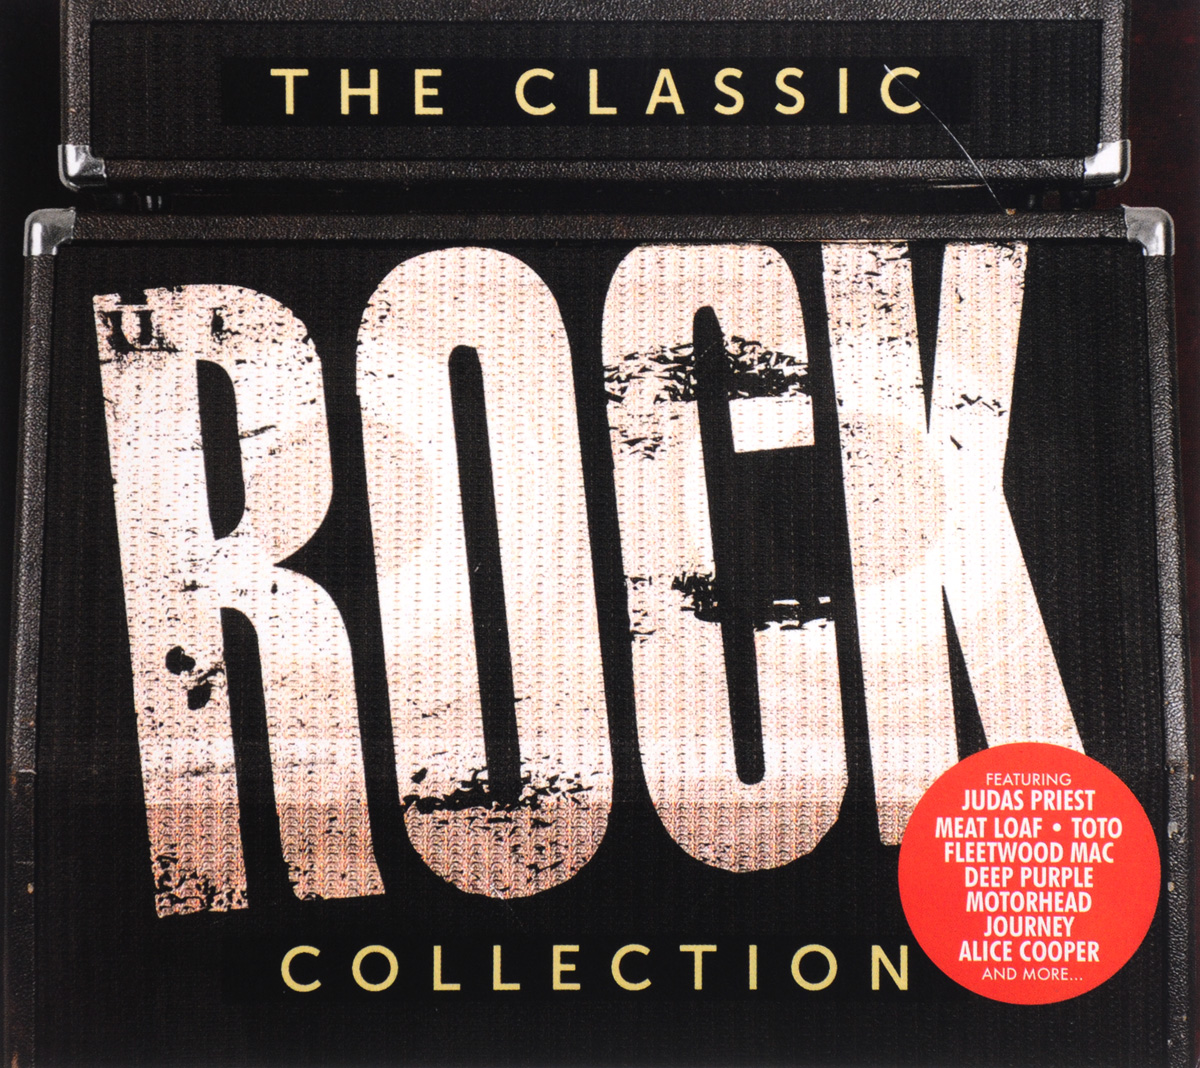 Boston,Blue Oyster Cult,The Outfield,Primal Scream,Fleetwood Mac,Big Brother & The Holding Company,Джеф Бакли,The Fray,Стив Вай,Bad English The Classic Rock Collection (3 CD) cd billie holiday the centennial collection